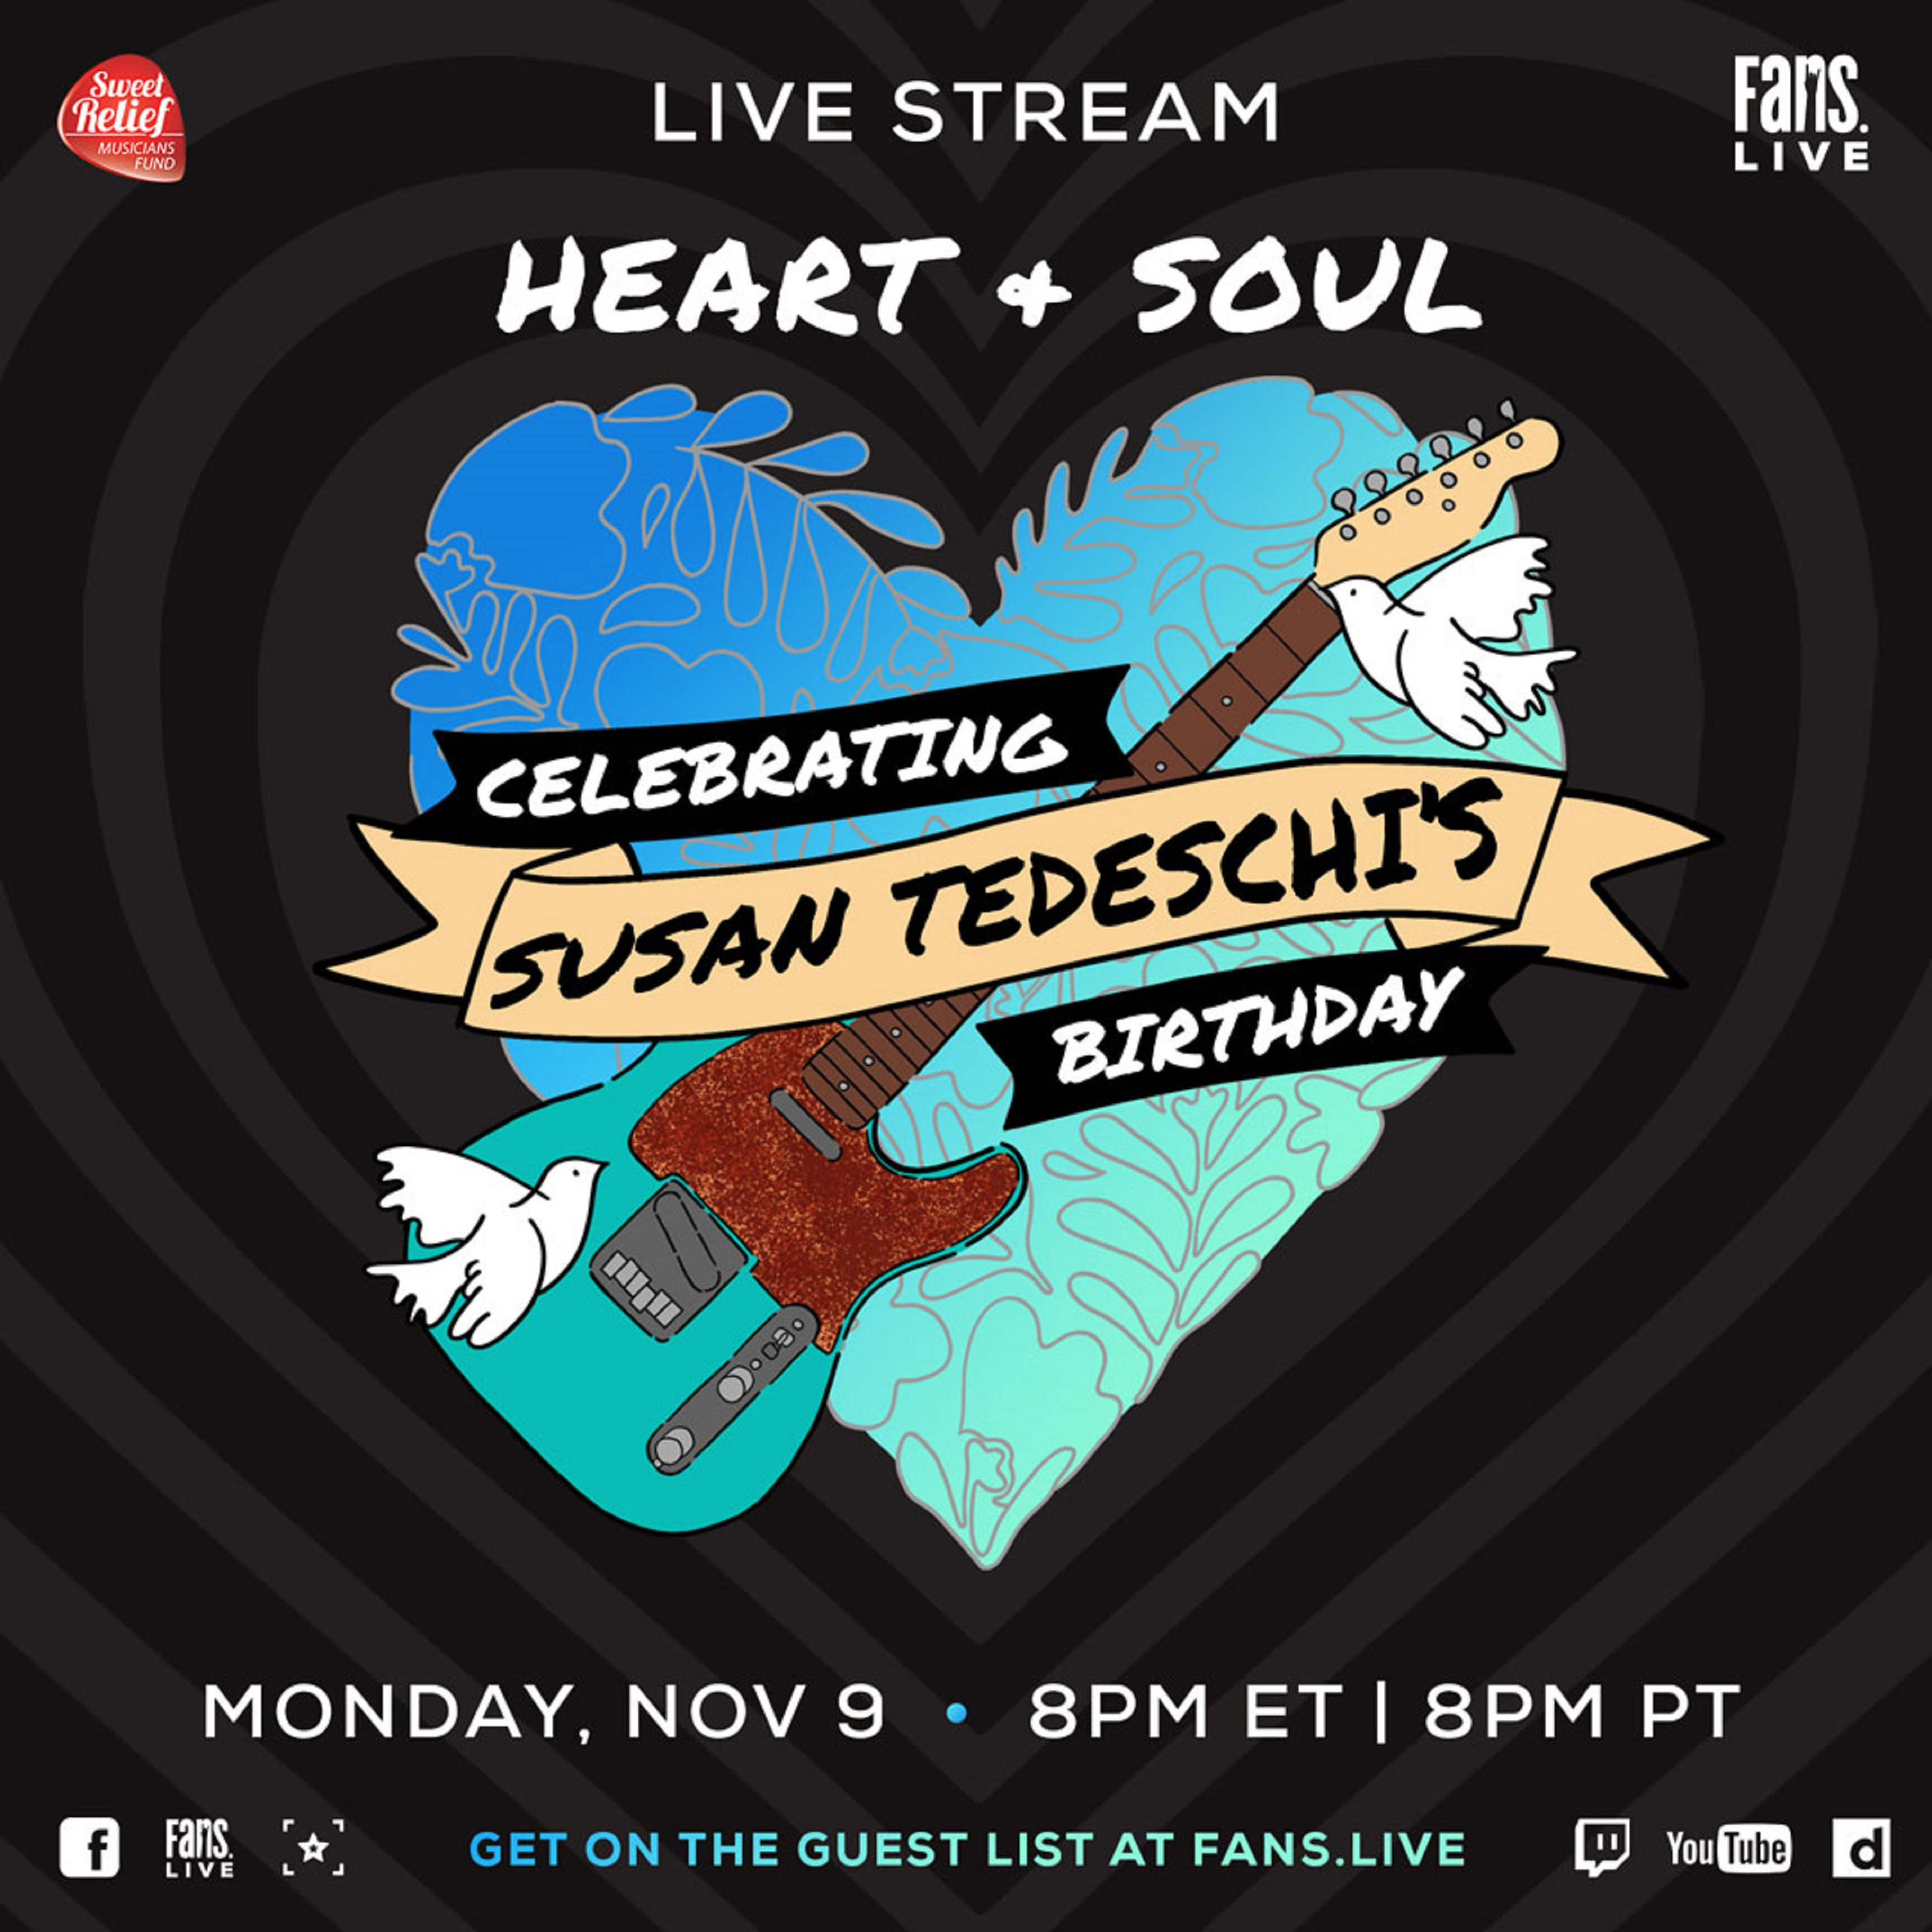 Susan Tedeschi's Birthday Celebration LiveStream